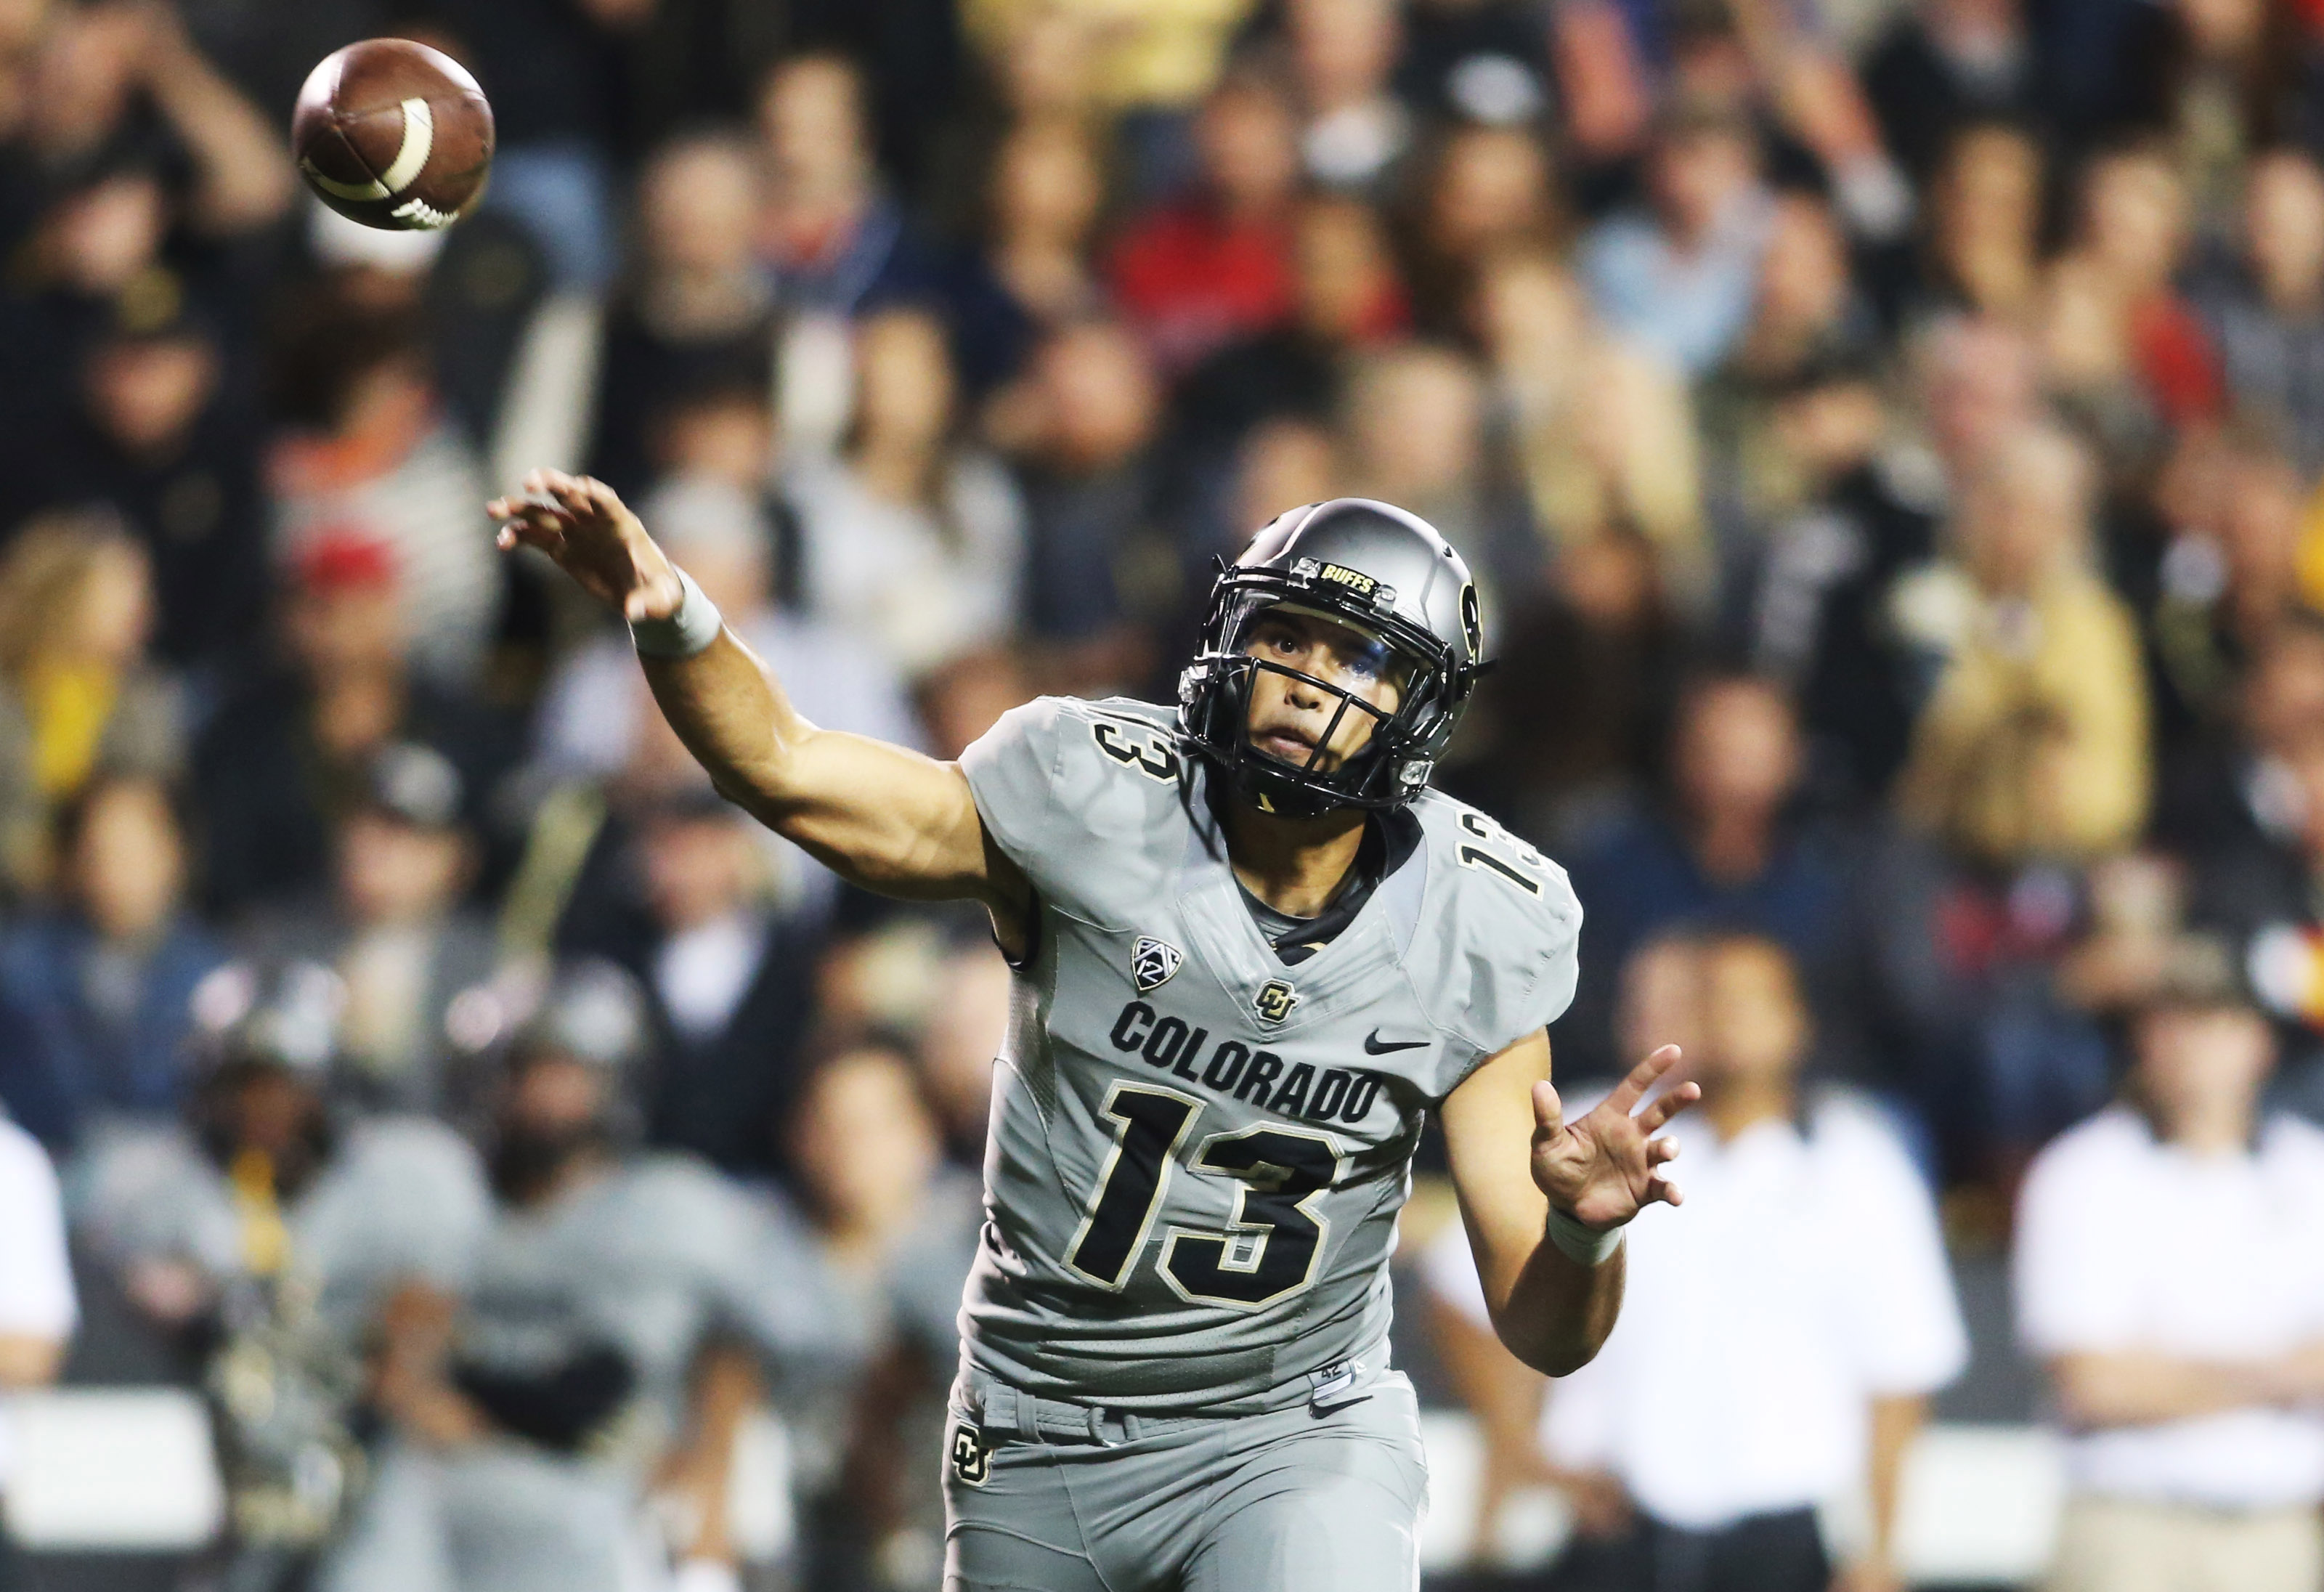 The Buffs need Sefo Liufau to be in first half form this Saturday night.